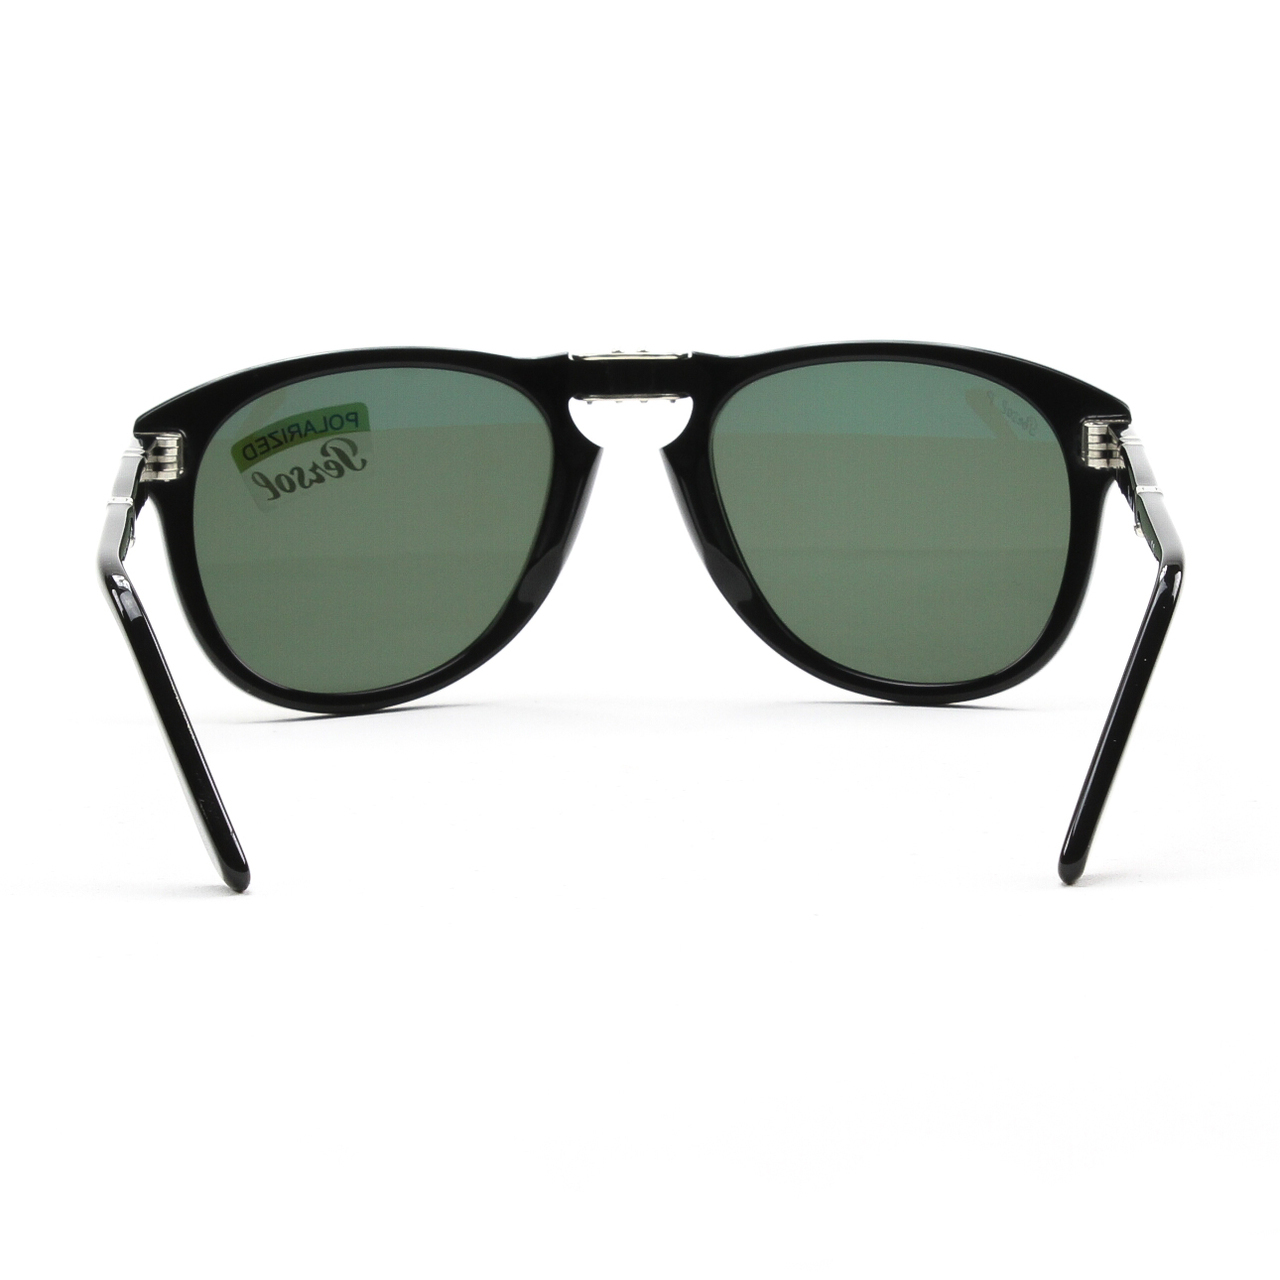 02af812f2a9b2 Persol - PO 714 95 58 54mm Shiny Black Green Polarized Folding Sunglasses -  Walmart.com